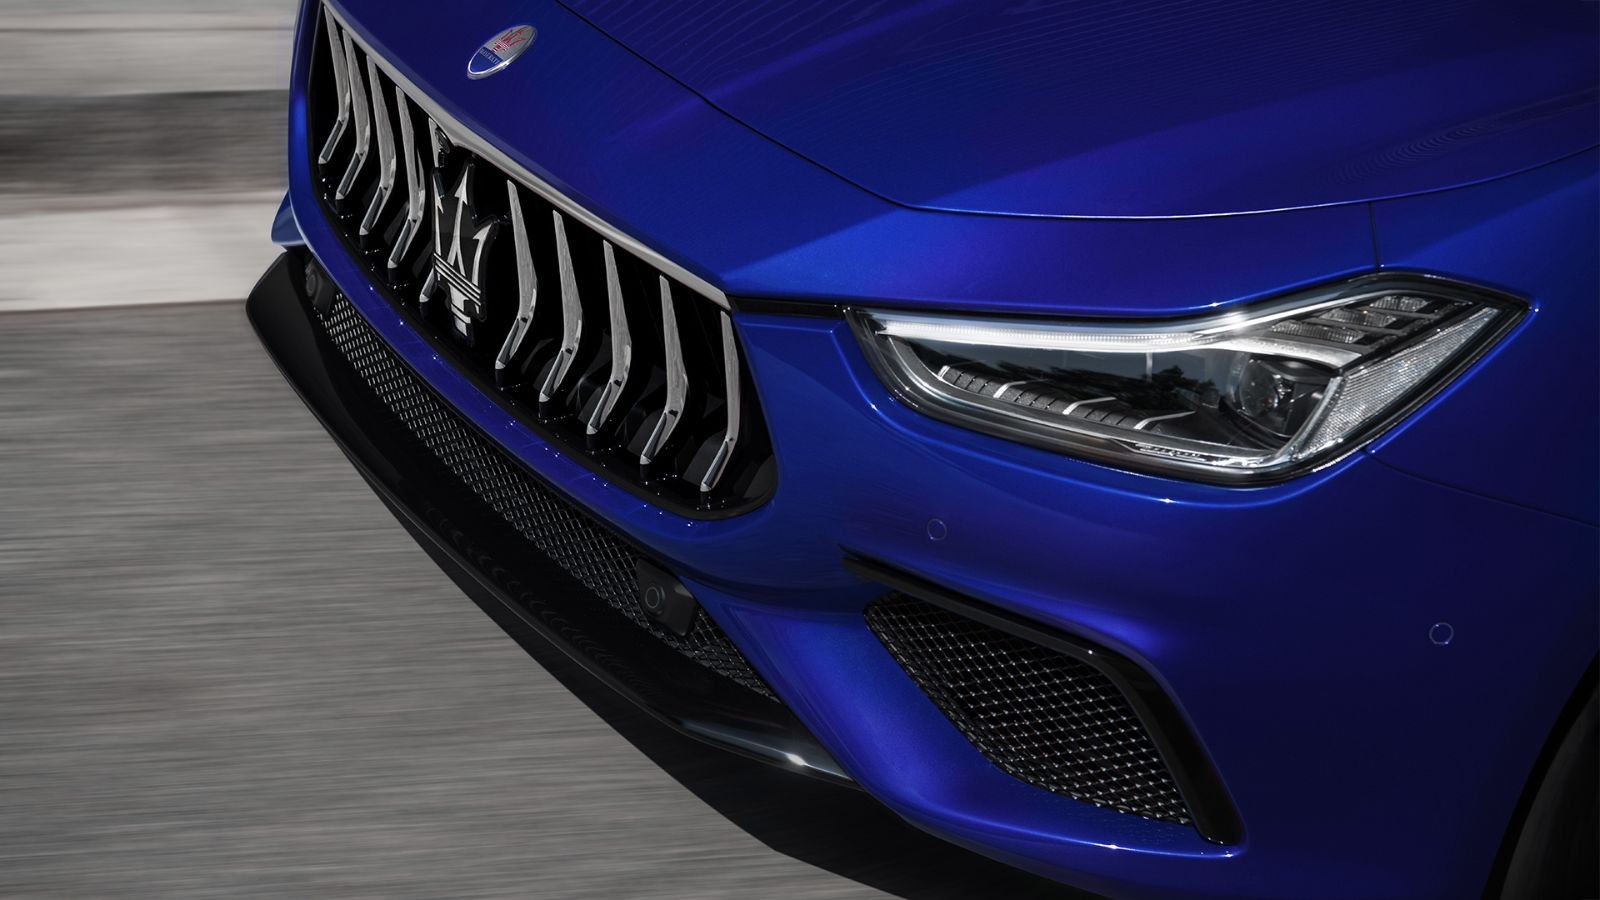 Maserati Ghibli GranSport front view from above, detail of headlights and bumper with logo